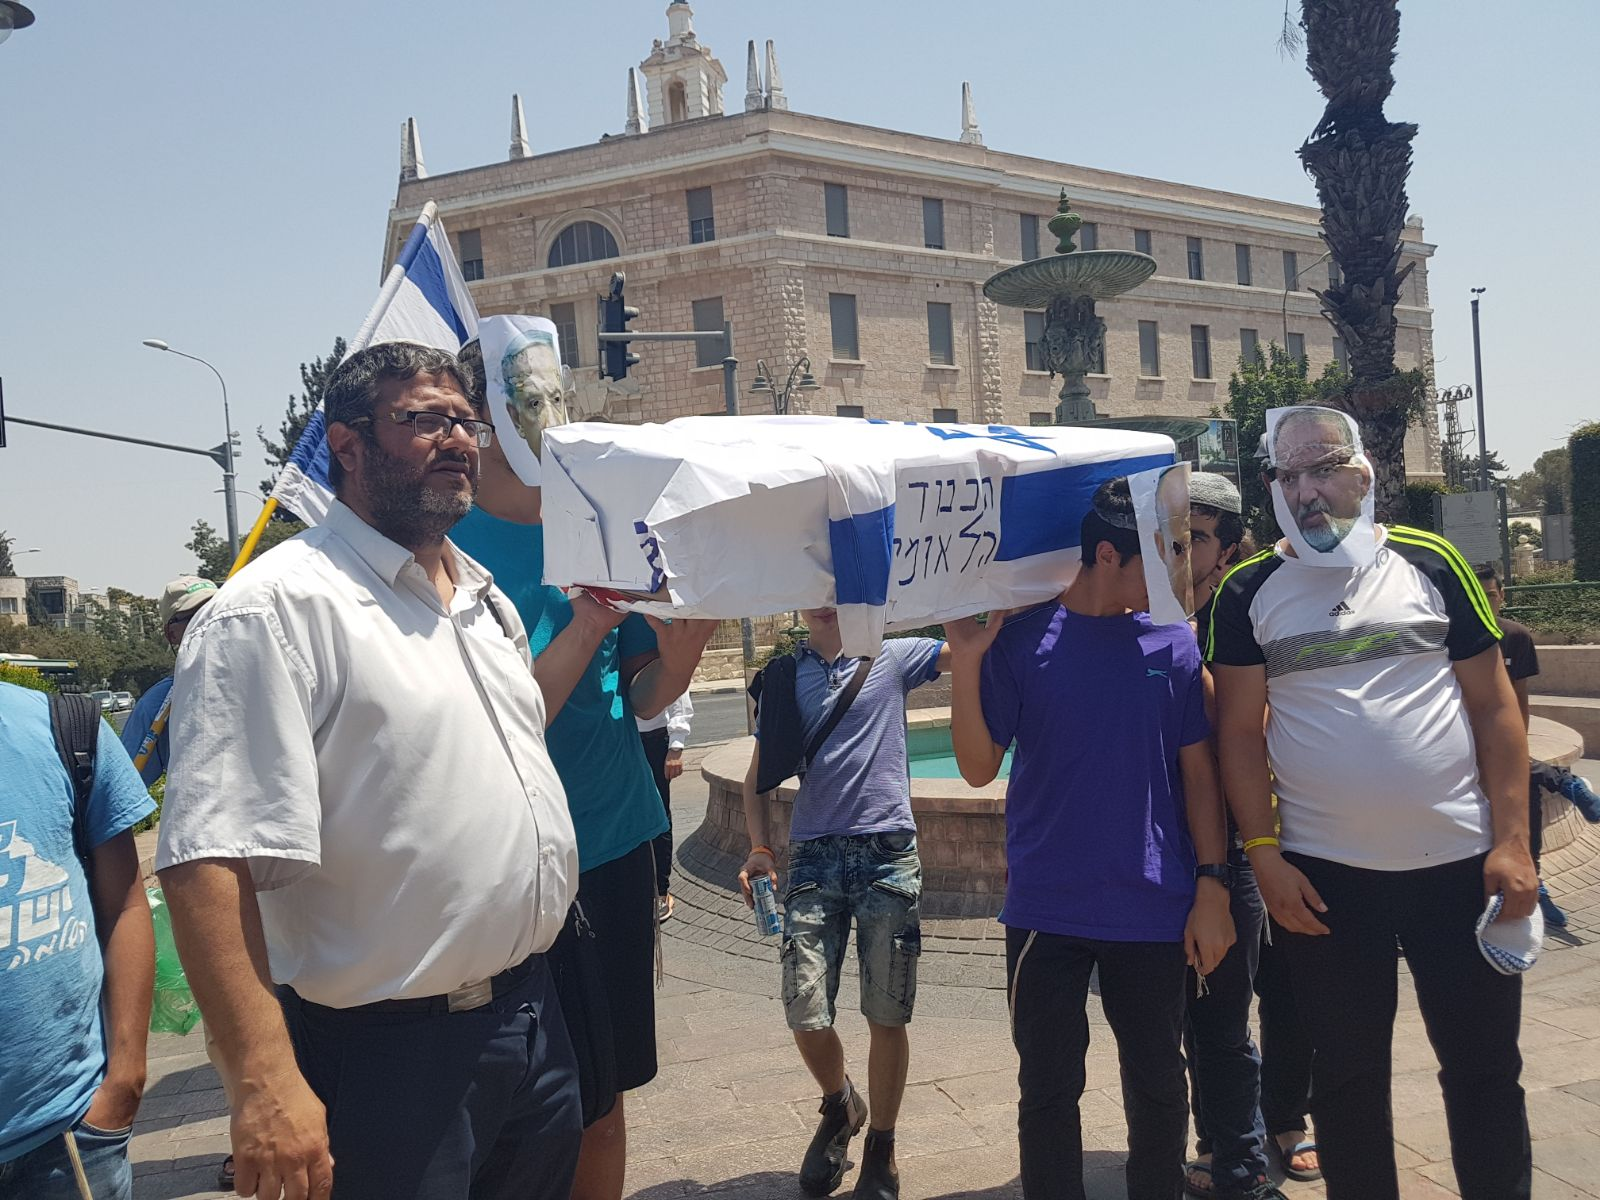 A funeral for Israel's honor, held outside the Prime Minster's residence. August 27, 2017.